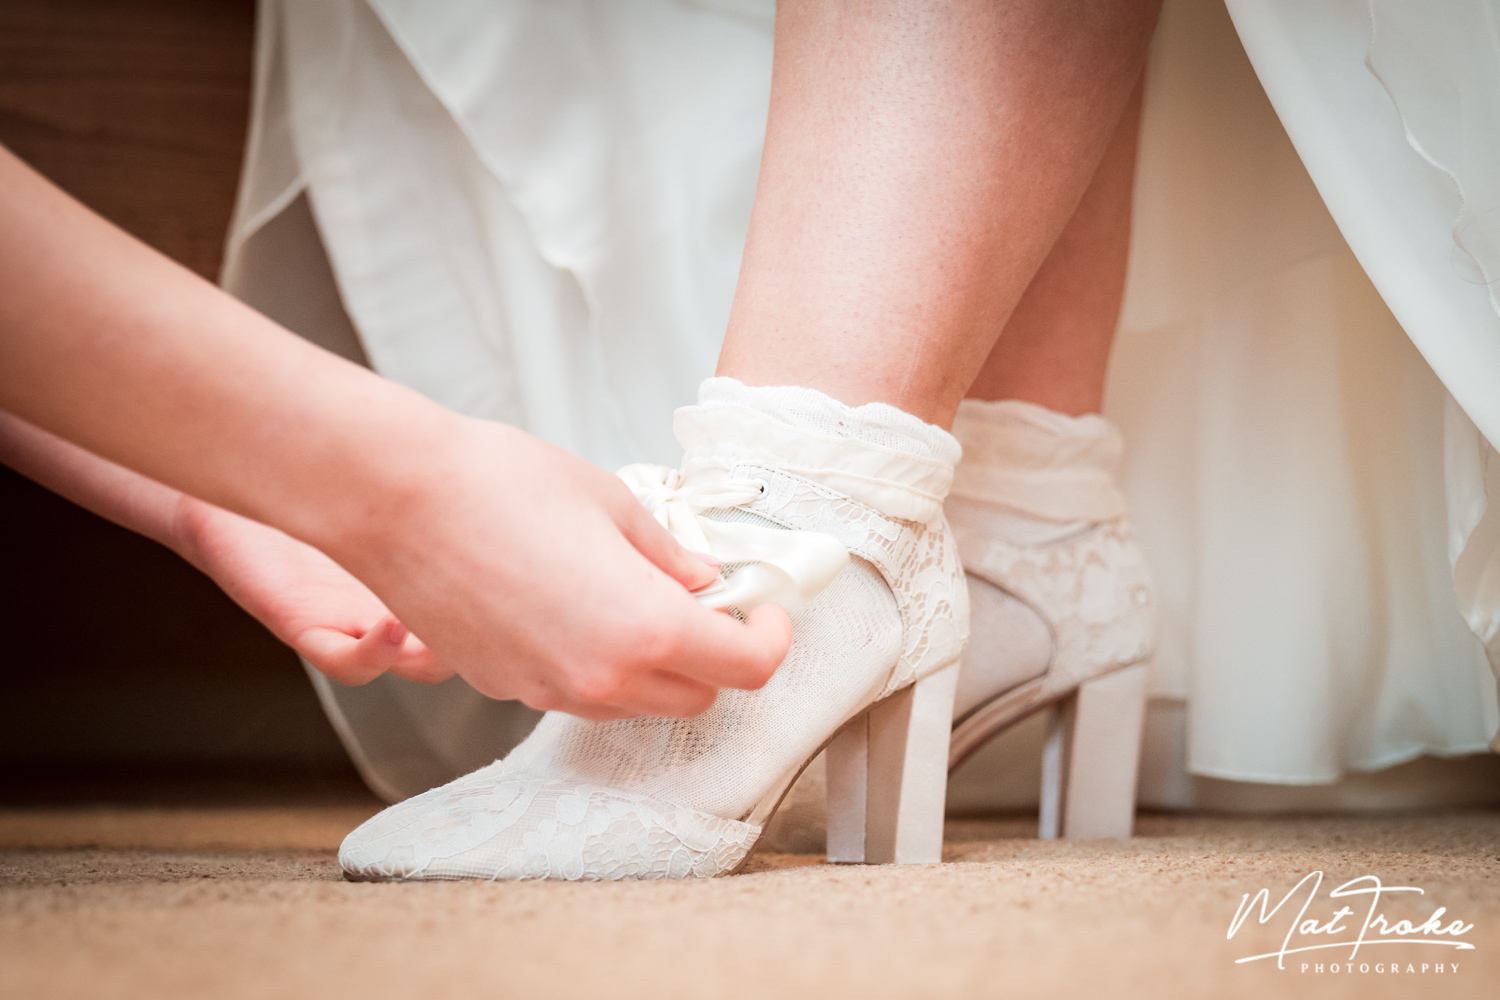 white-heart-inn-moorwood-alfreton-wedding-photographer-photography-sunset-venue-shoes-socks